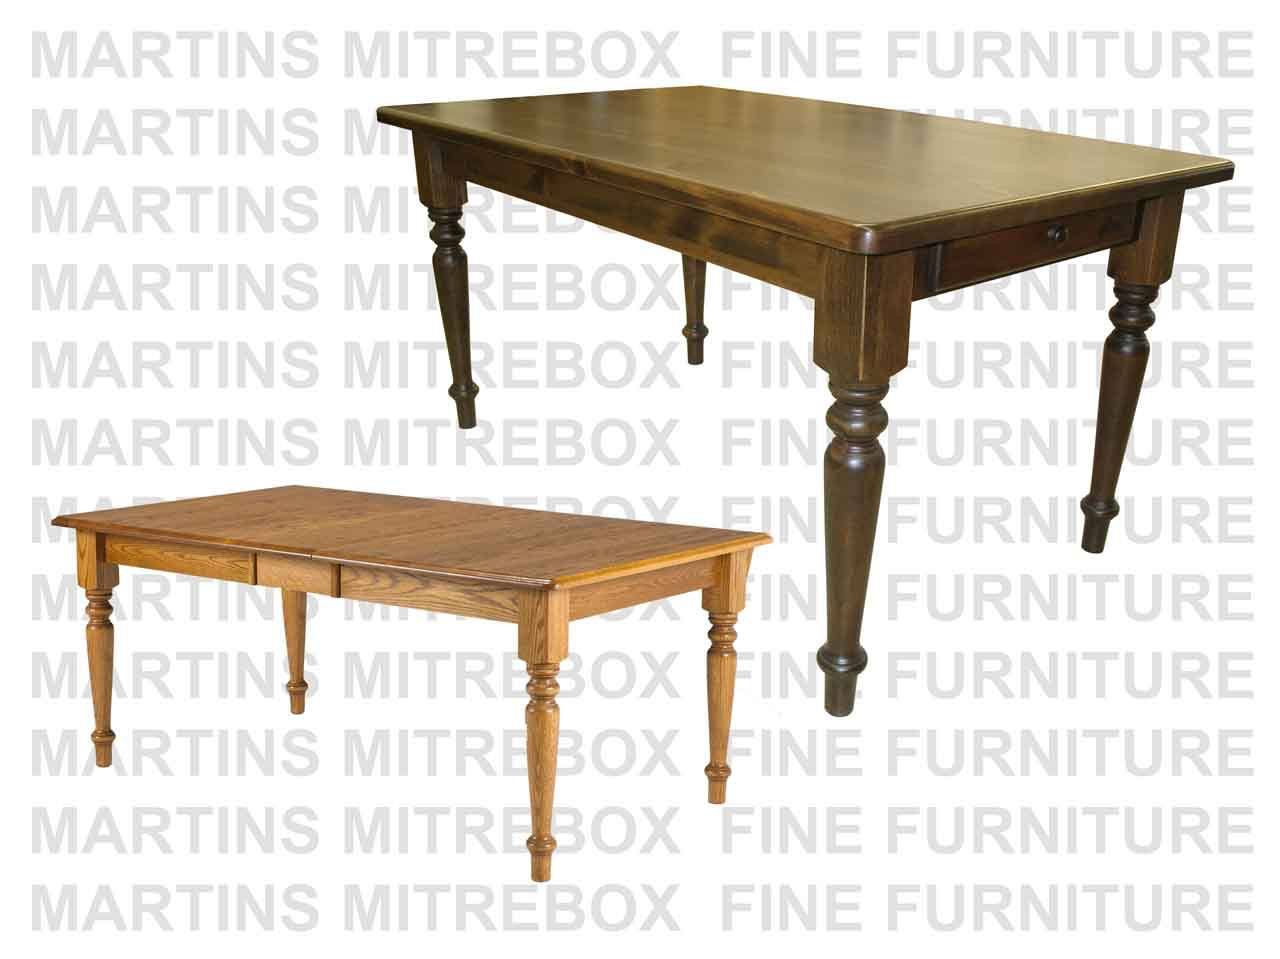 Oak reesor extension harvest table 36 39 39 d x 84 39 39 w x 30 39 39 h for 12 x 30 table